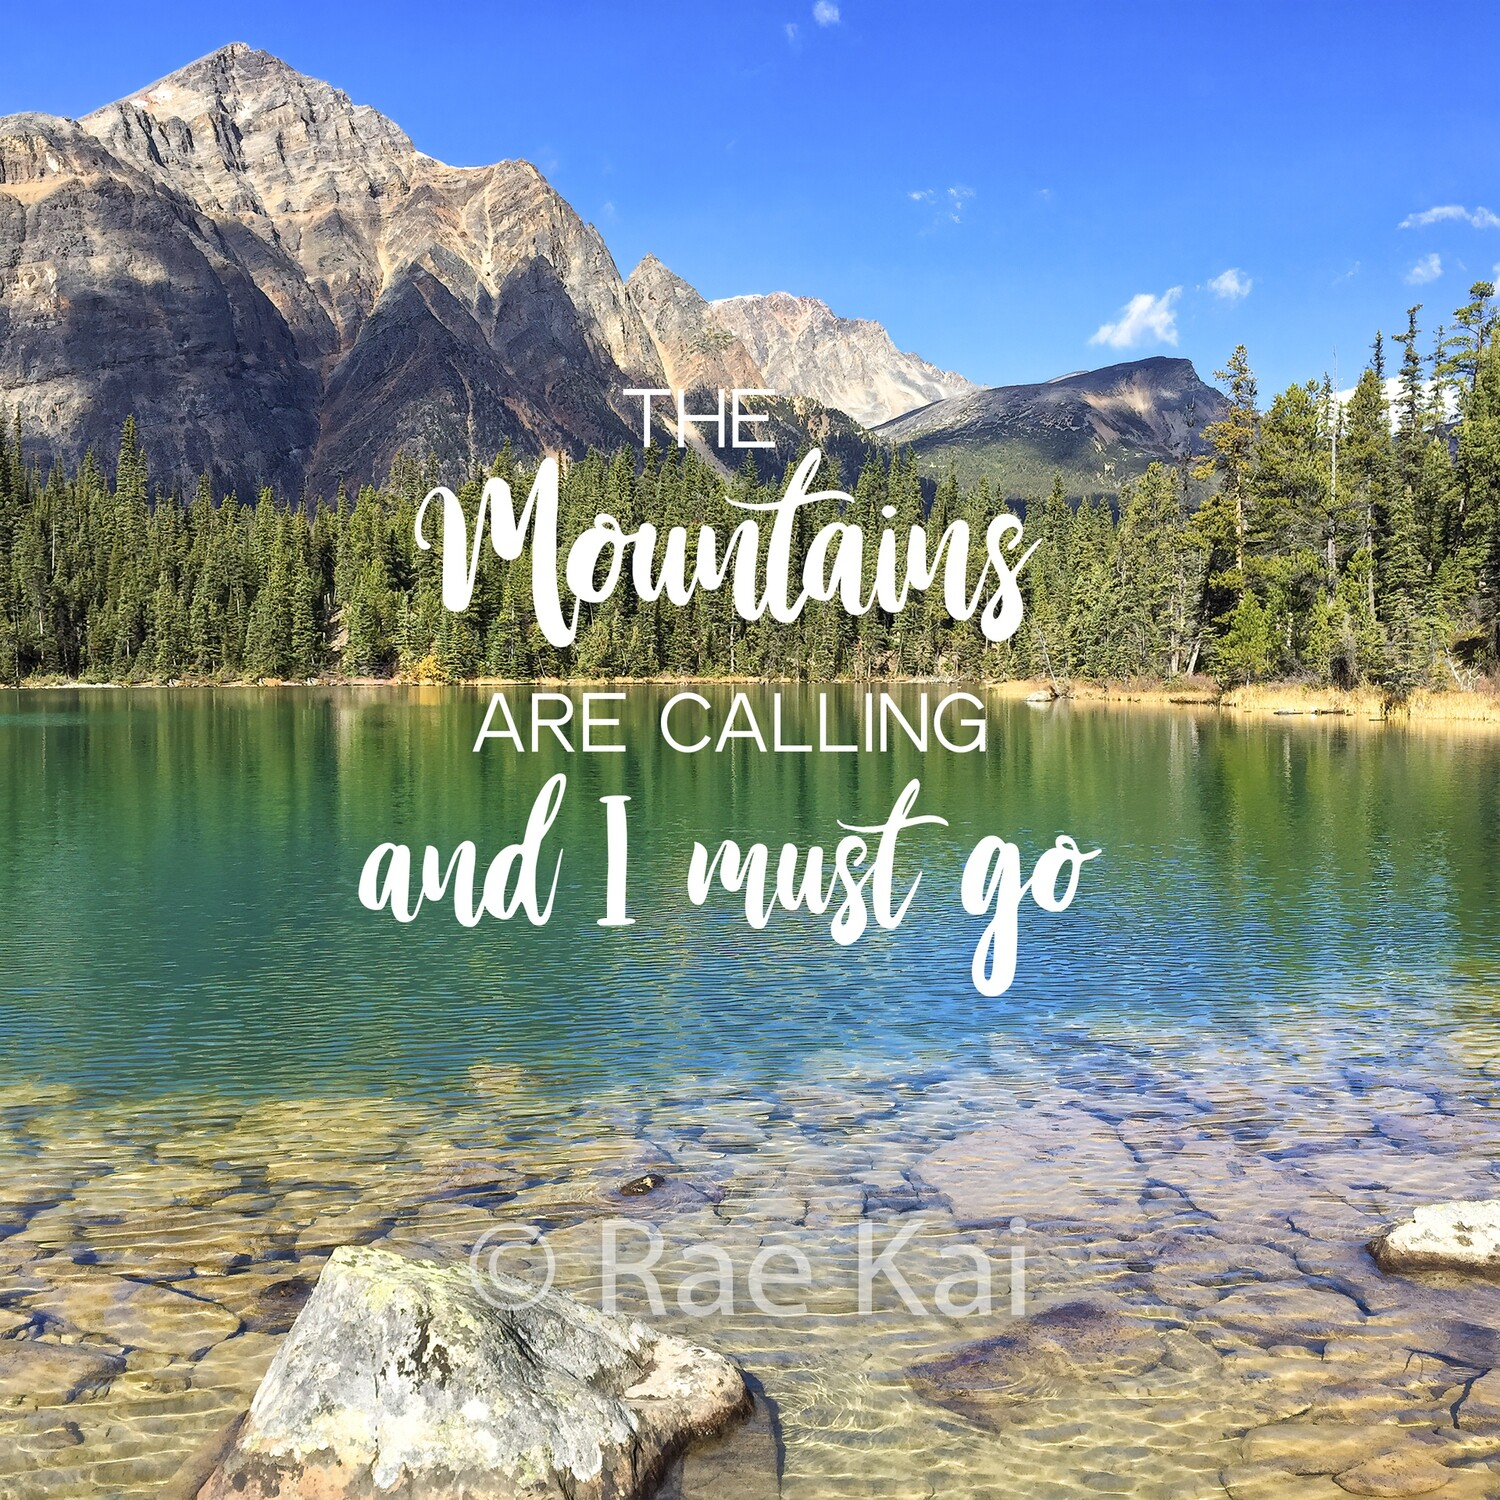 The Mountains Are Calling And I Must Go-Inspirational Square Photo